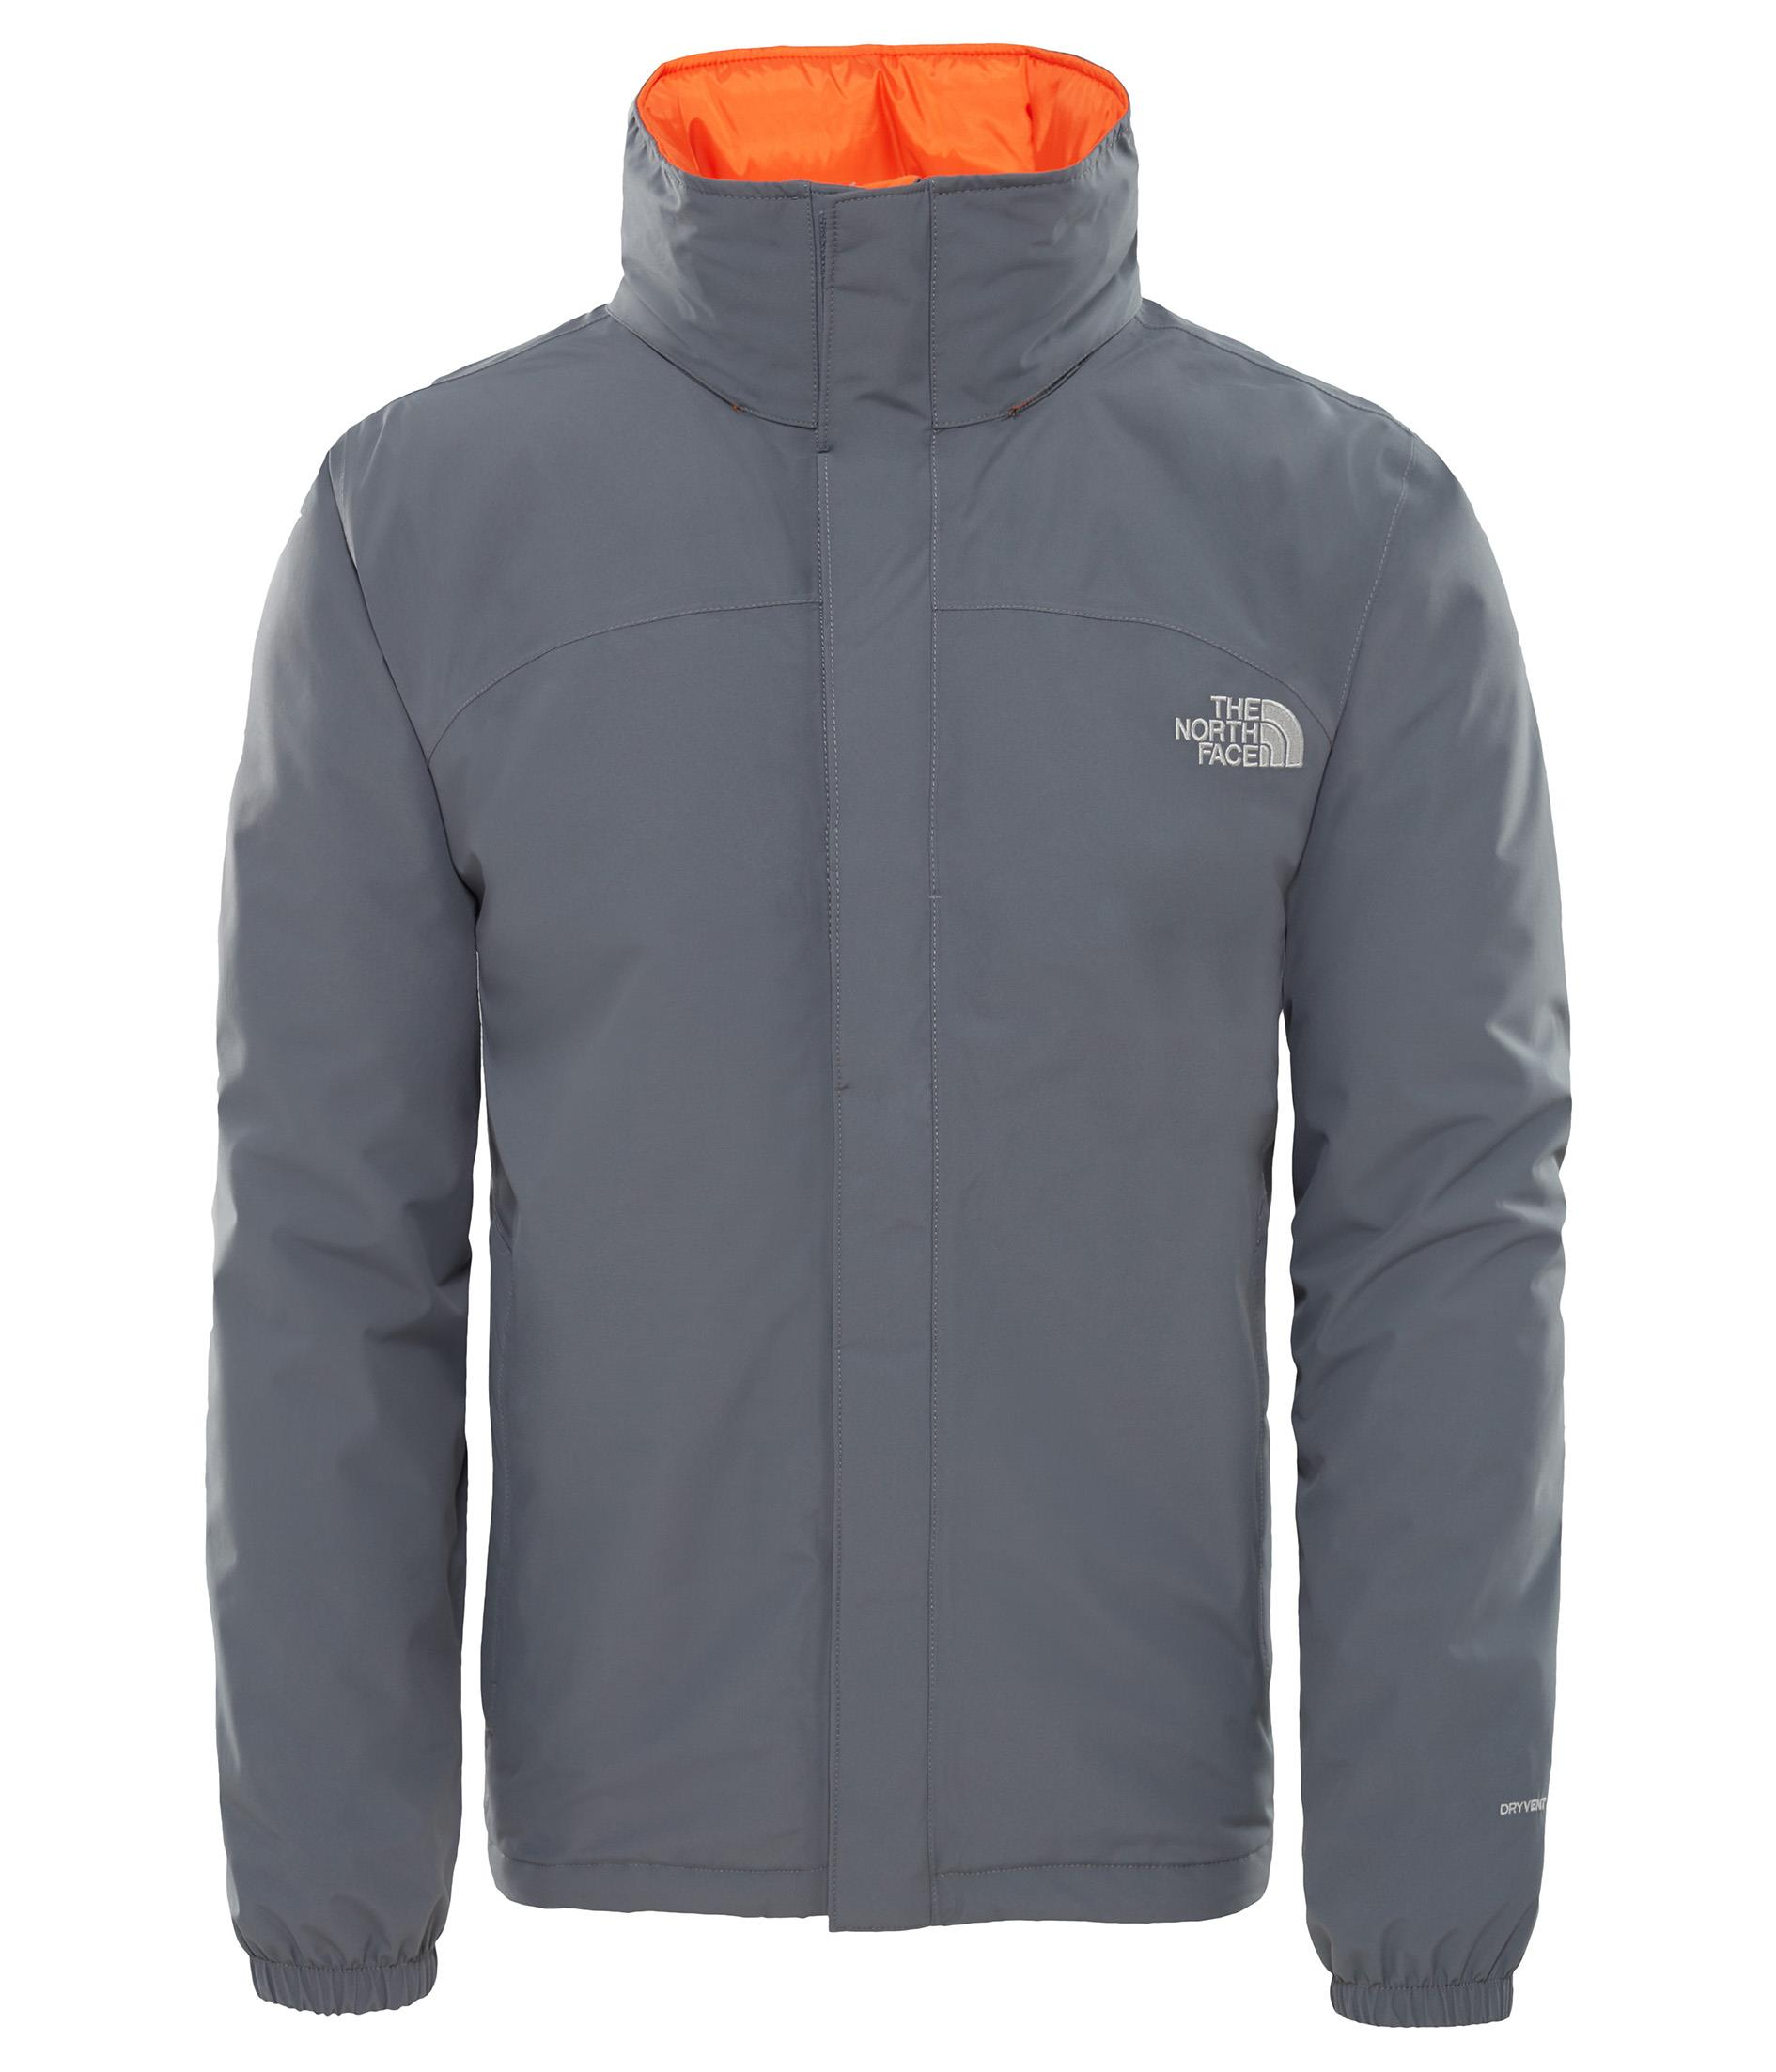 The North Face Erkek Resolve Ins Jkt Ceket